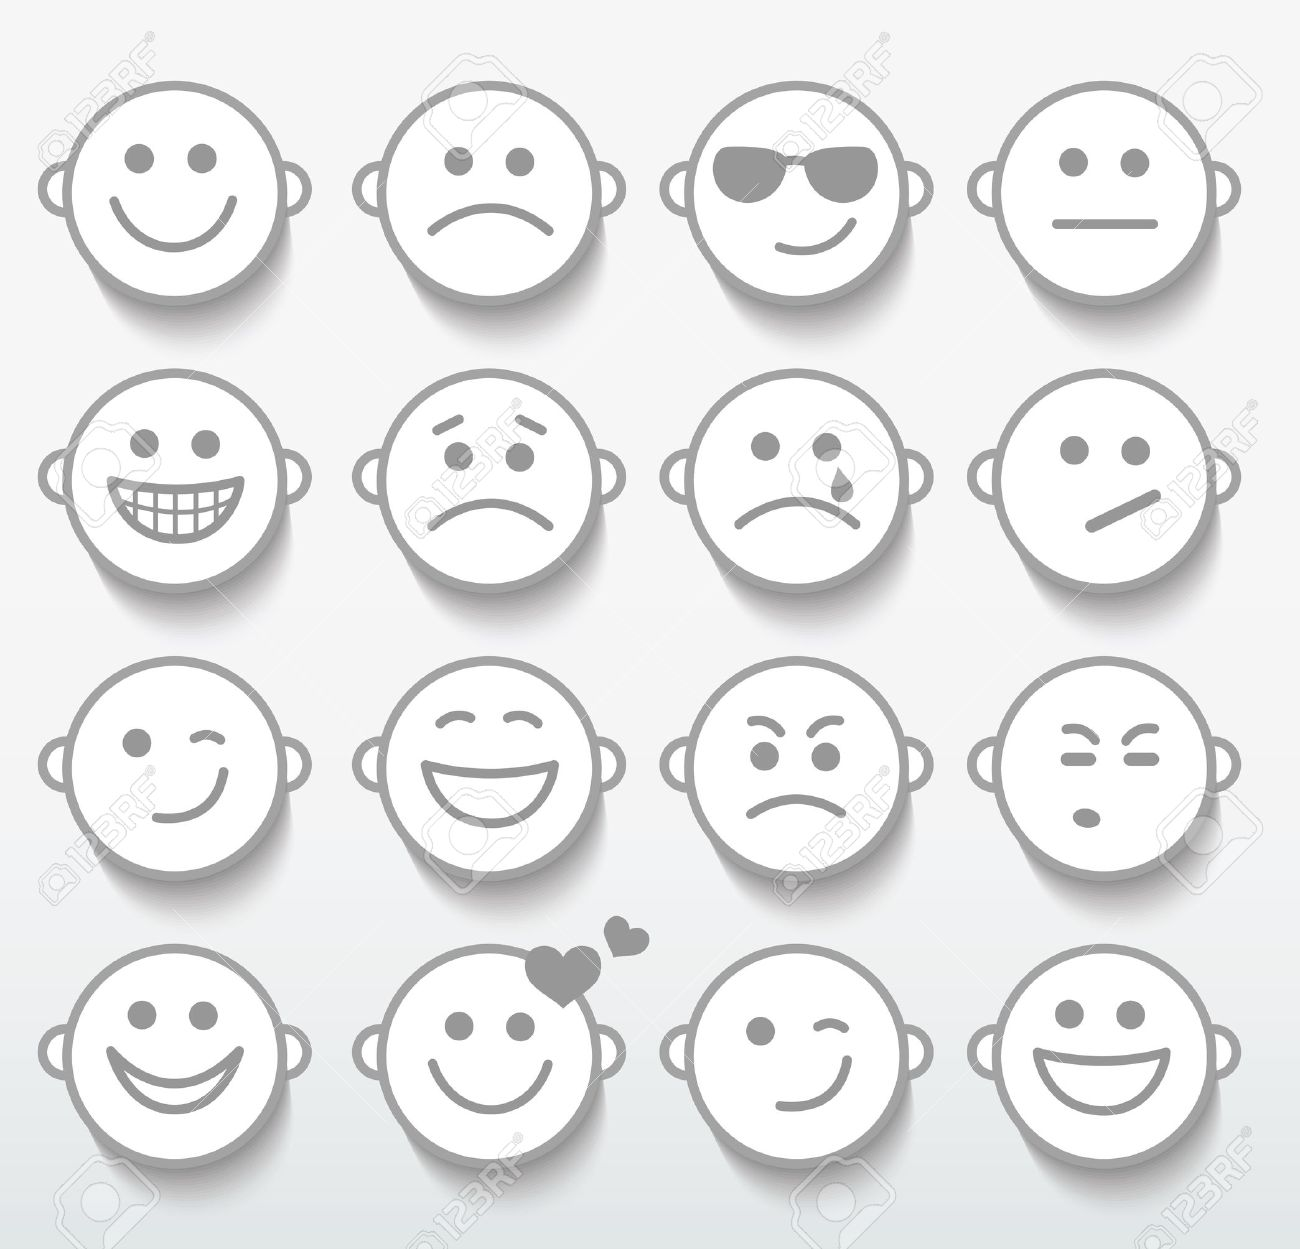 Set of faces with various emotion expressions. Stock Vector - 20352740